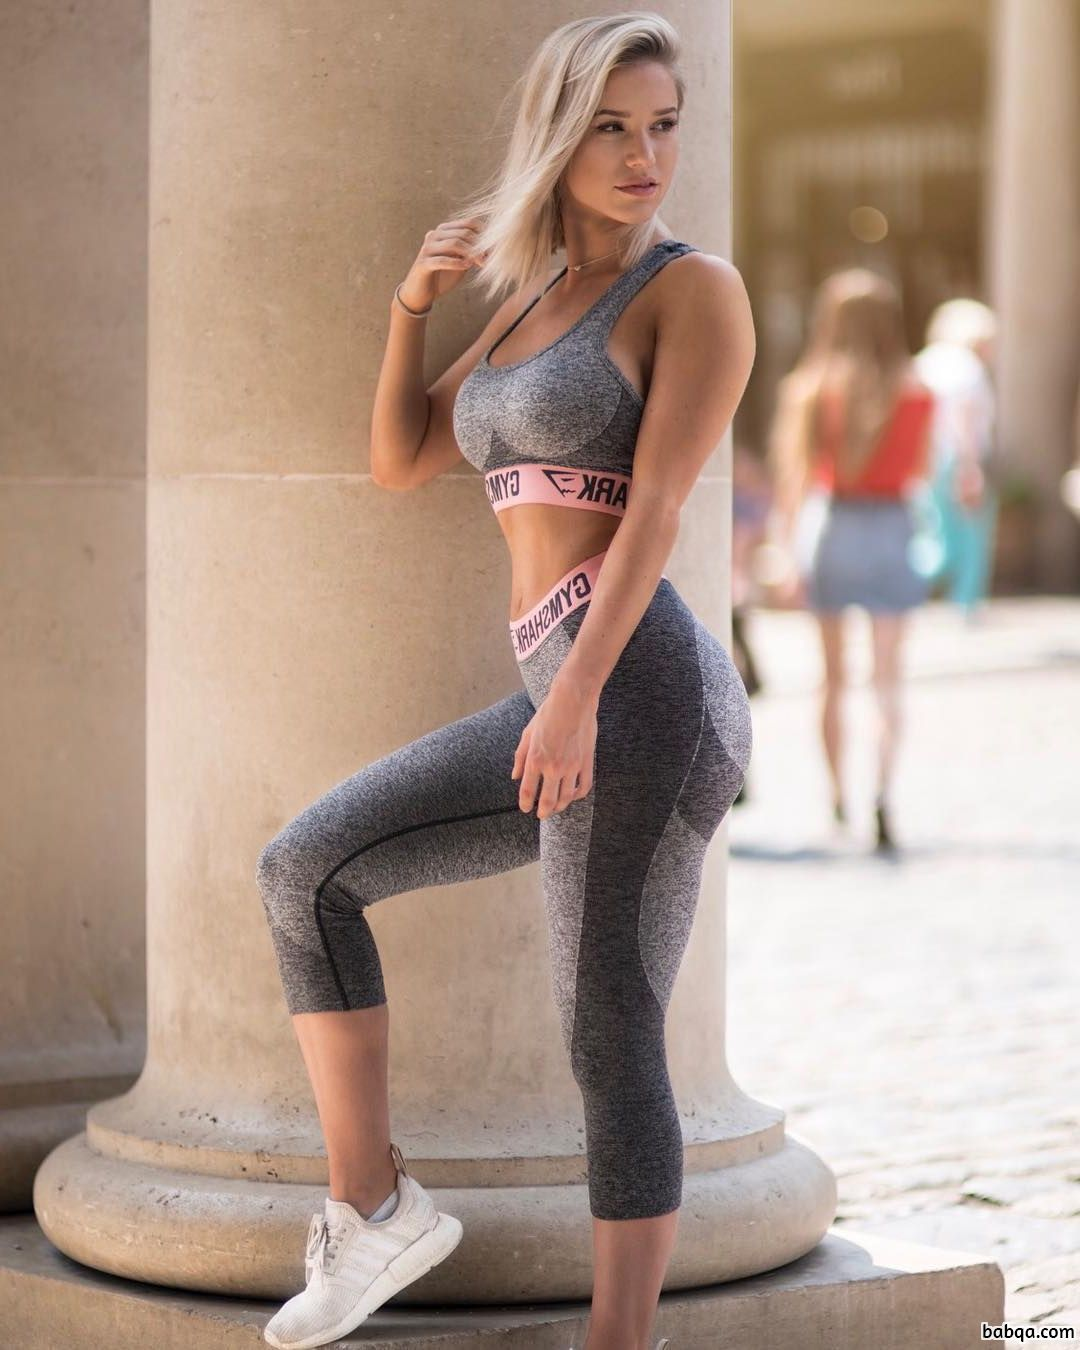 sexy girl photos com repost from gymsharkwomen – sexy girl with abs